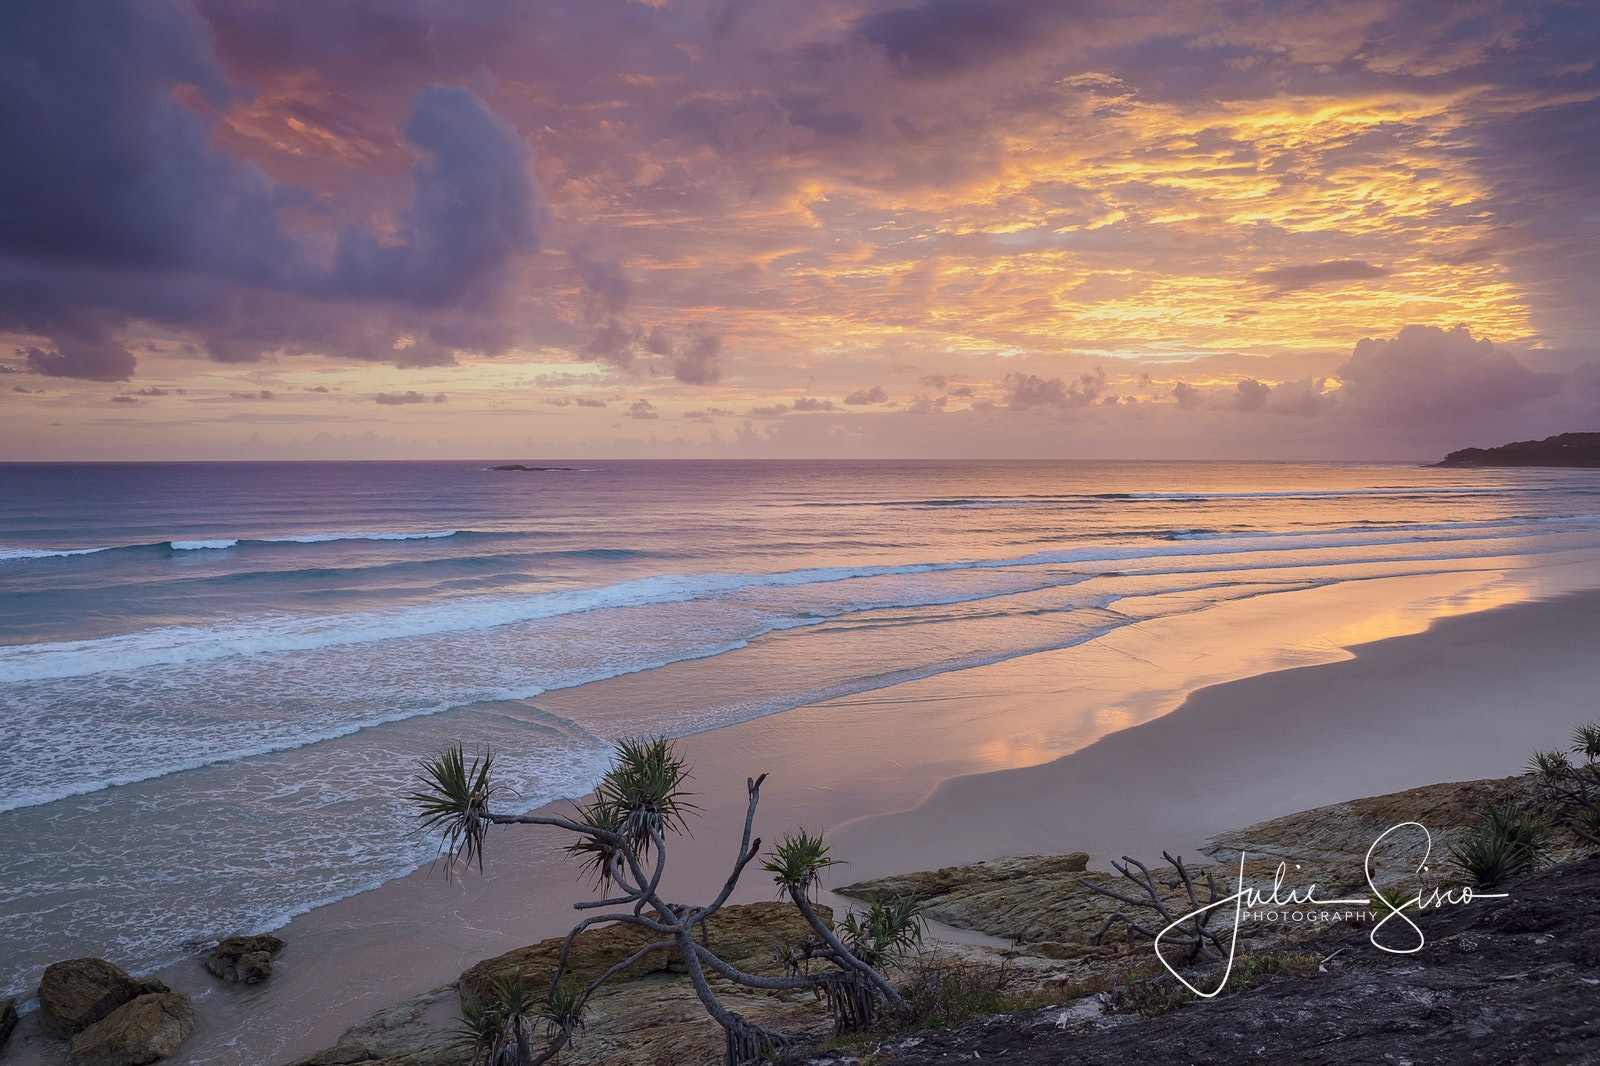 Sunrise from high on Home - Snapshots of Straddie. Wall Art Landscape and Seascape Photography by Julie Sisco. Photos from North Stradbroke Island, Queensland,...